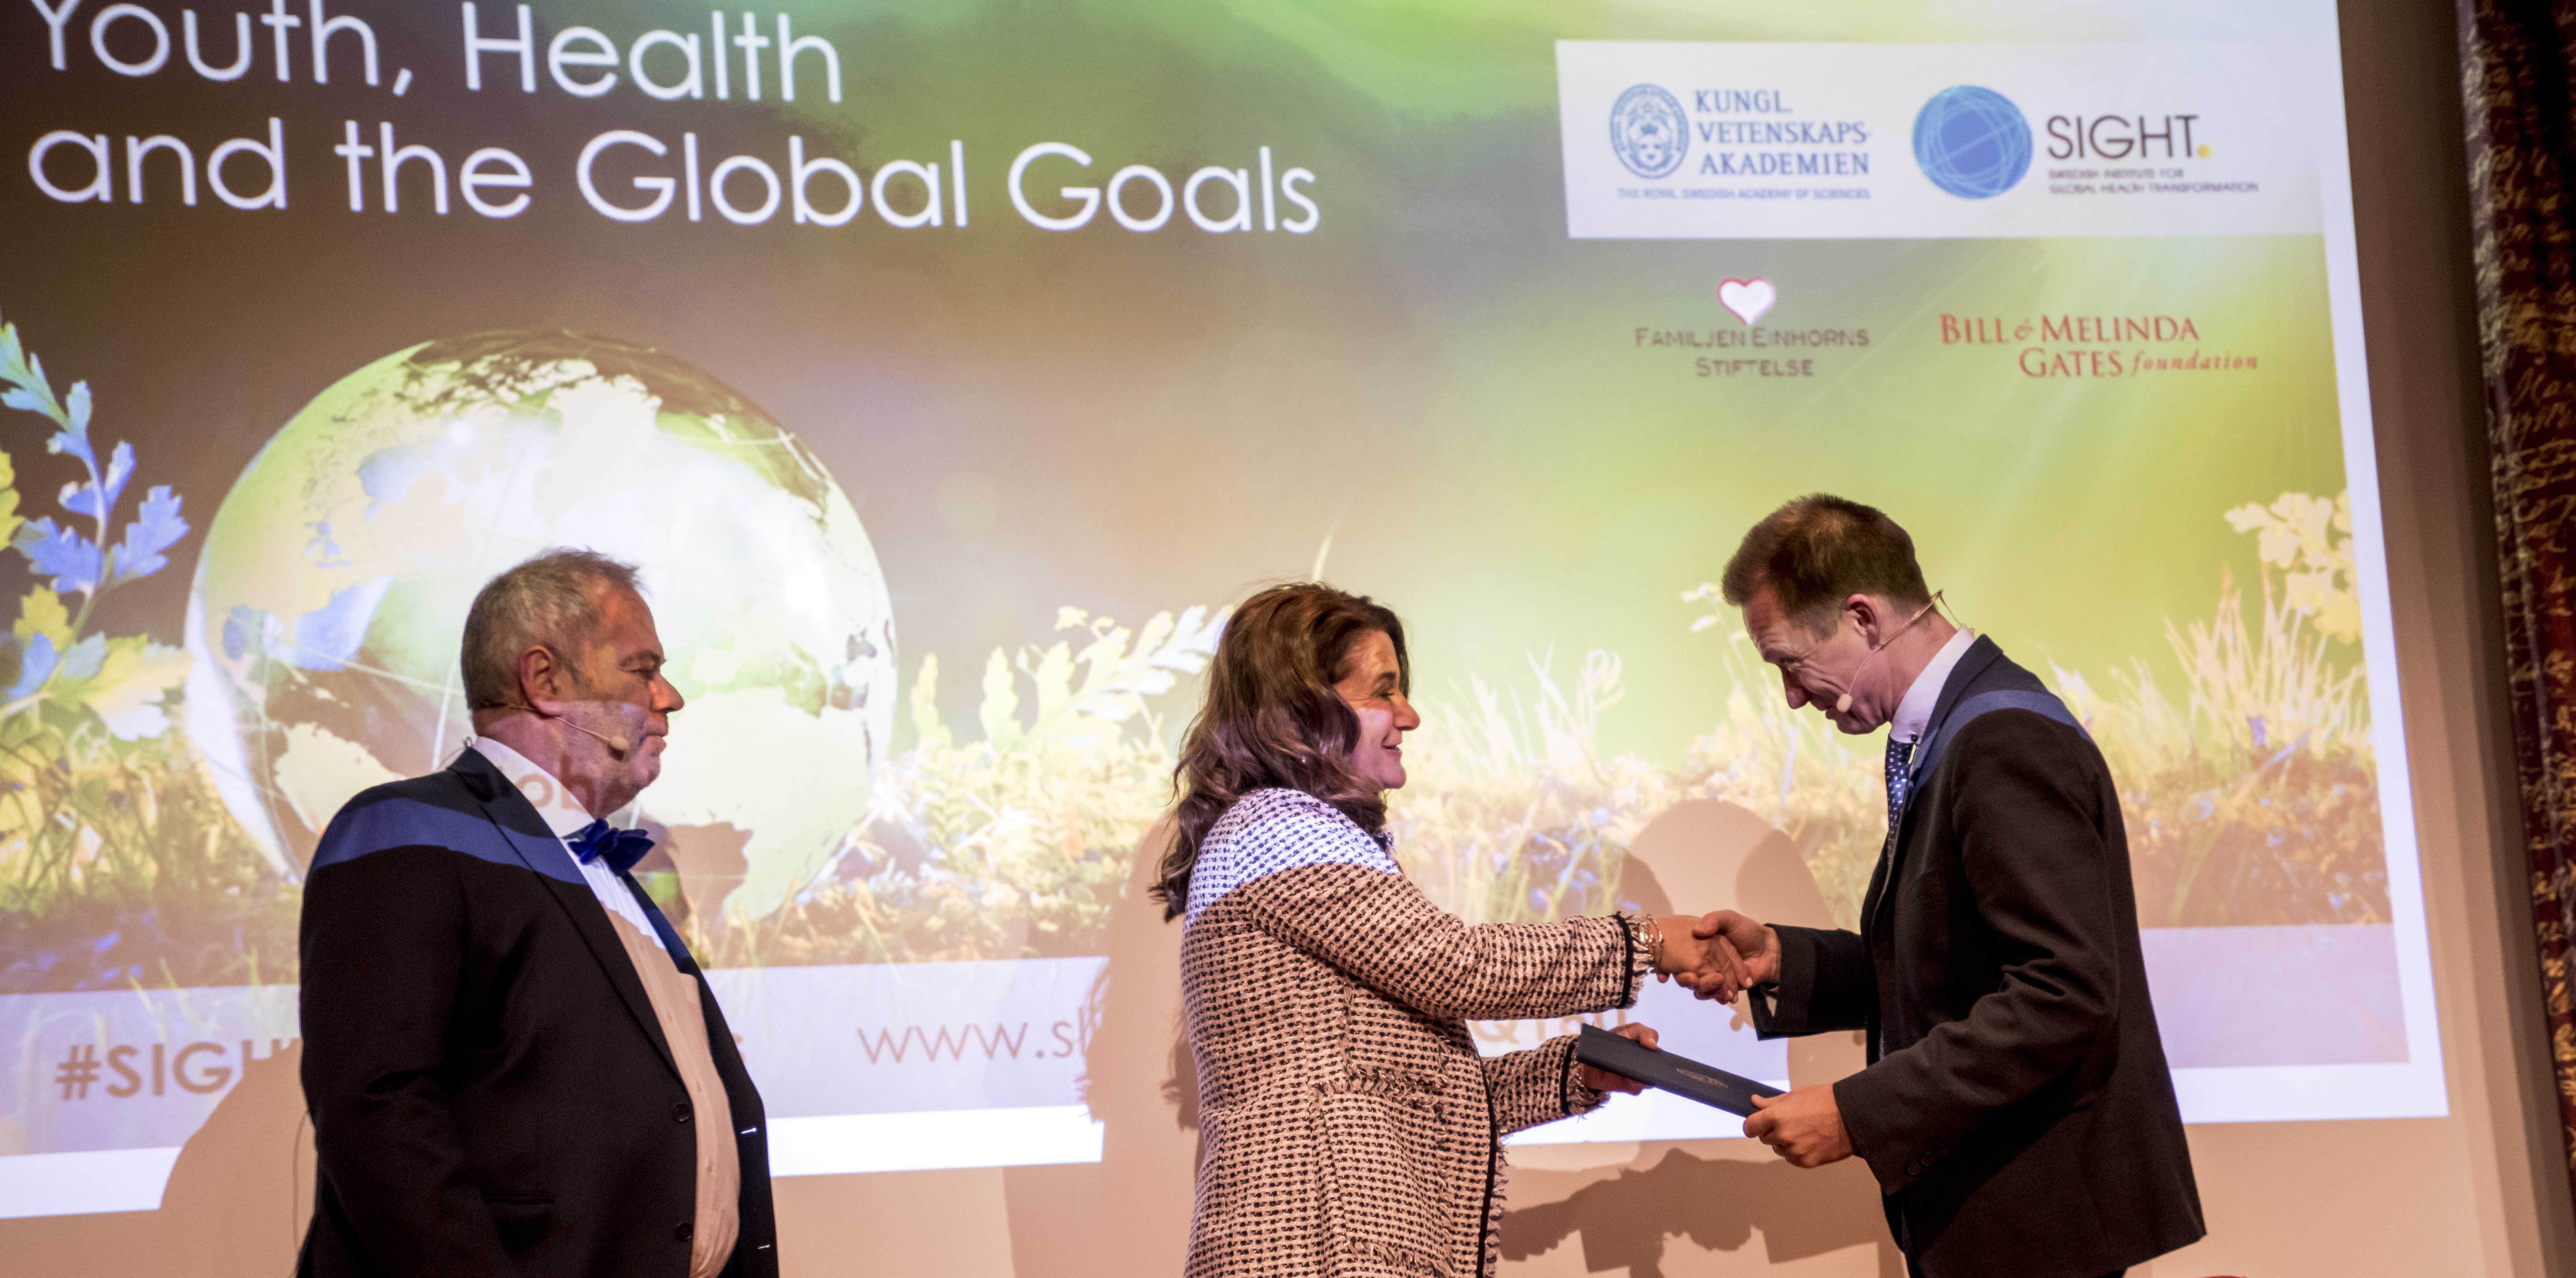 stefan-einhorn-melinda-gates-andreas-mårtensson-receives-sight-award